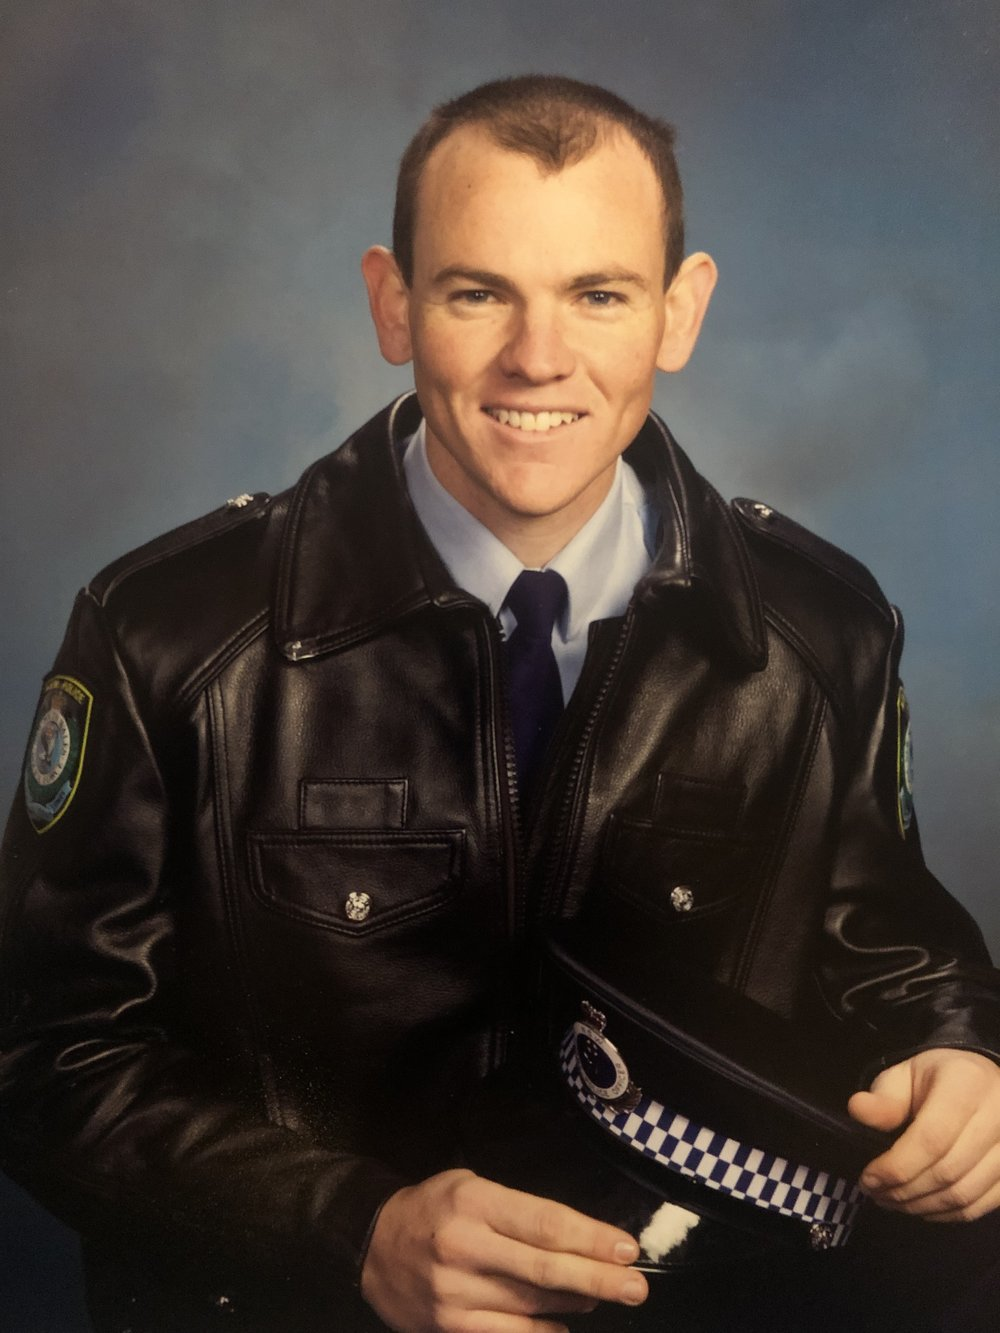 Snr. Constable Conolly at work in his uniformed days.